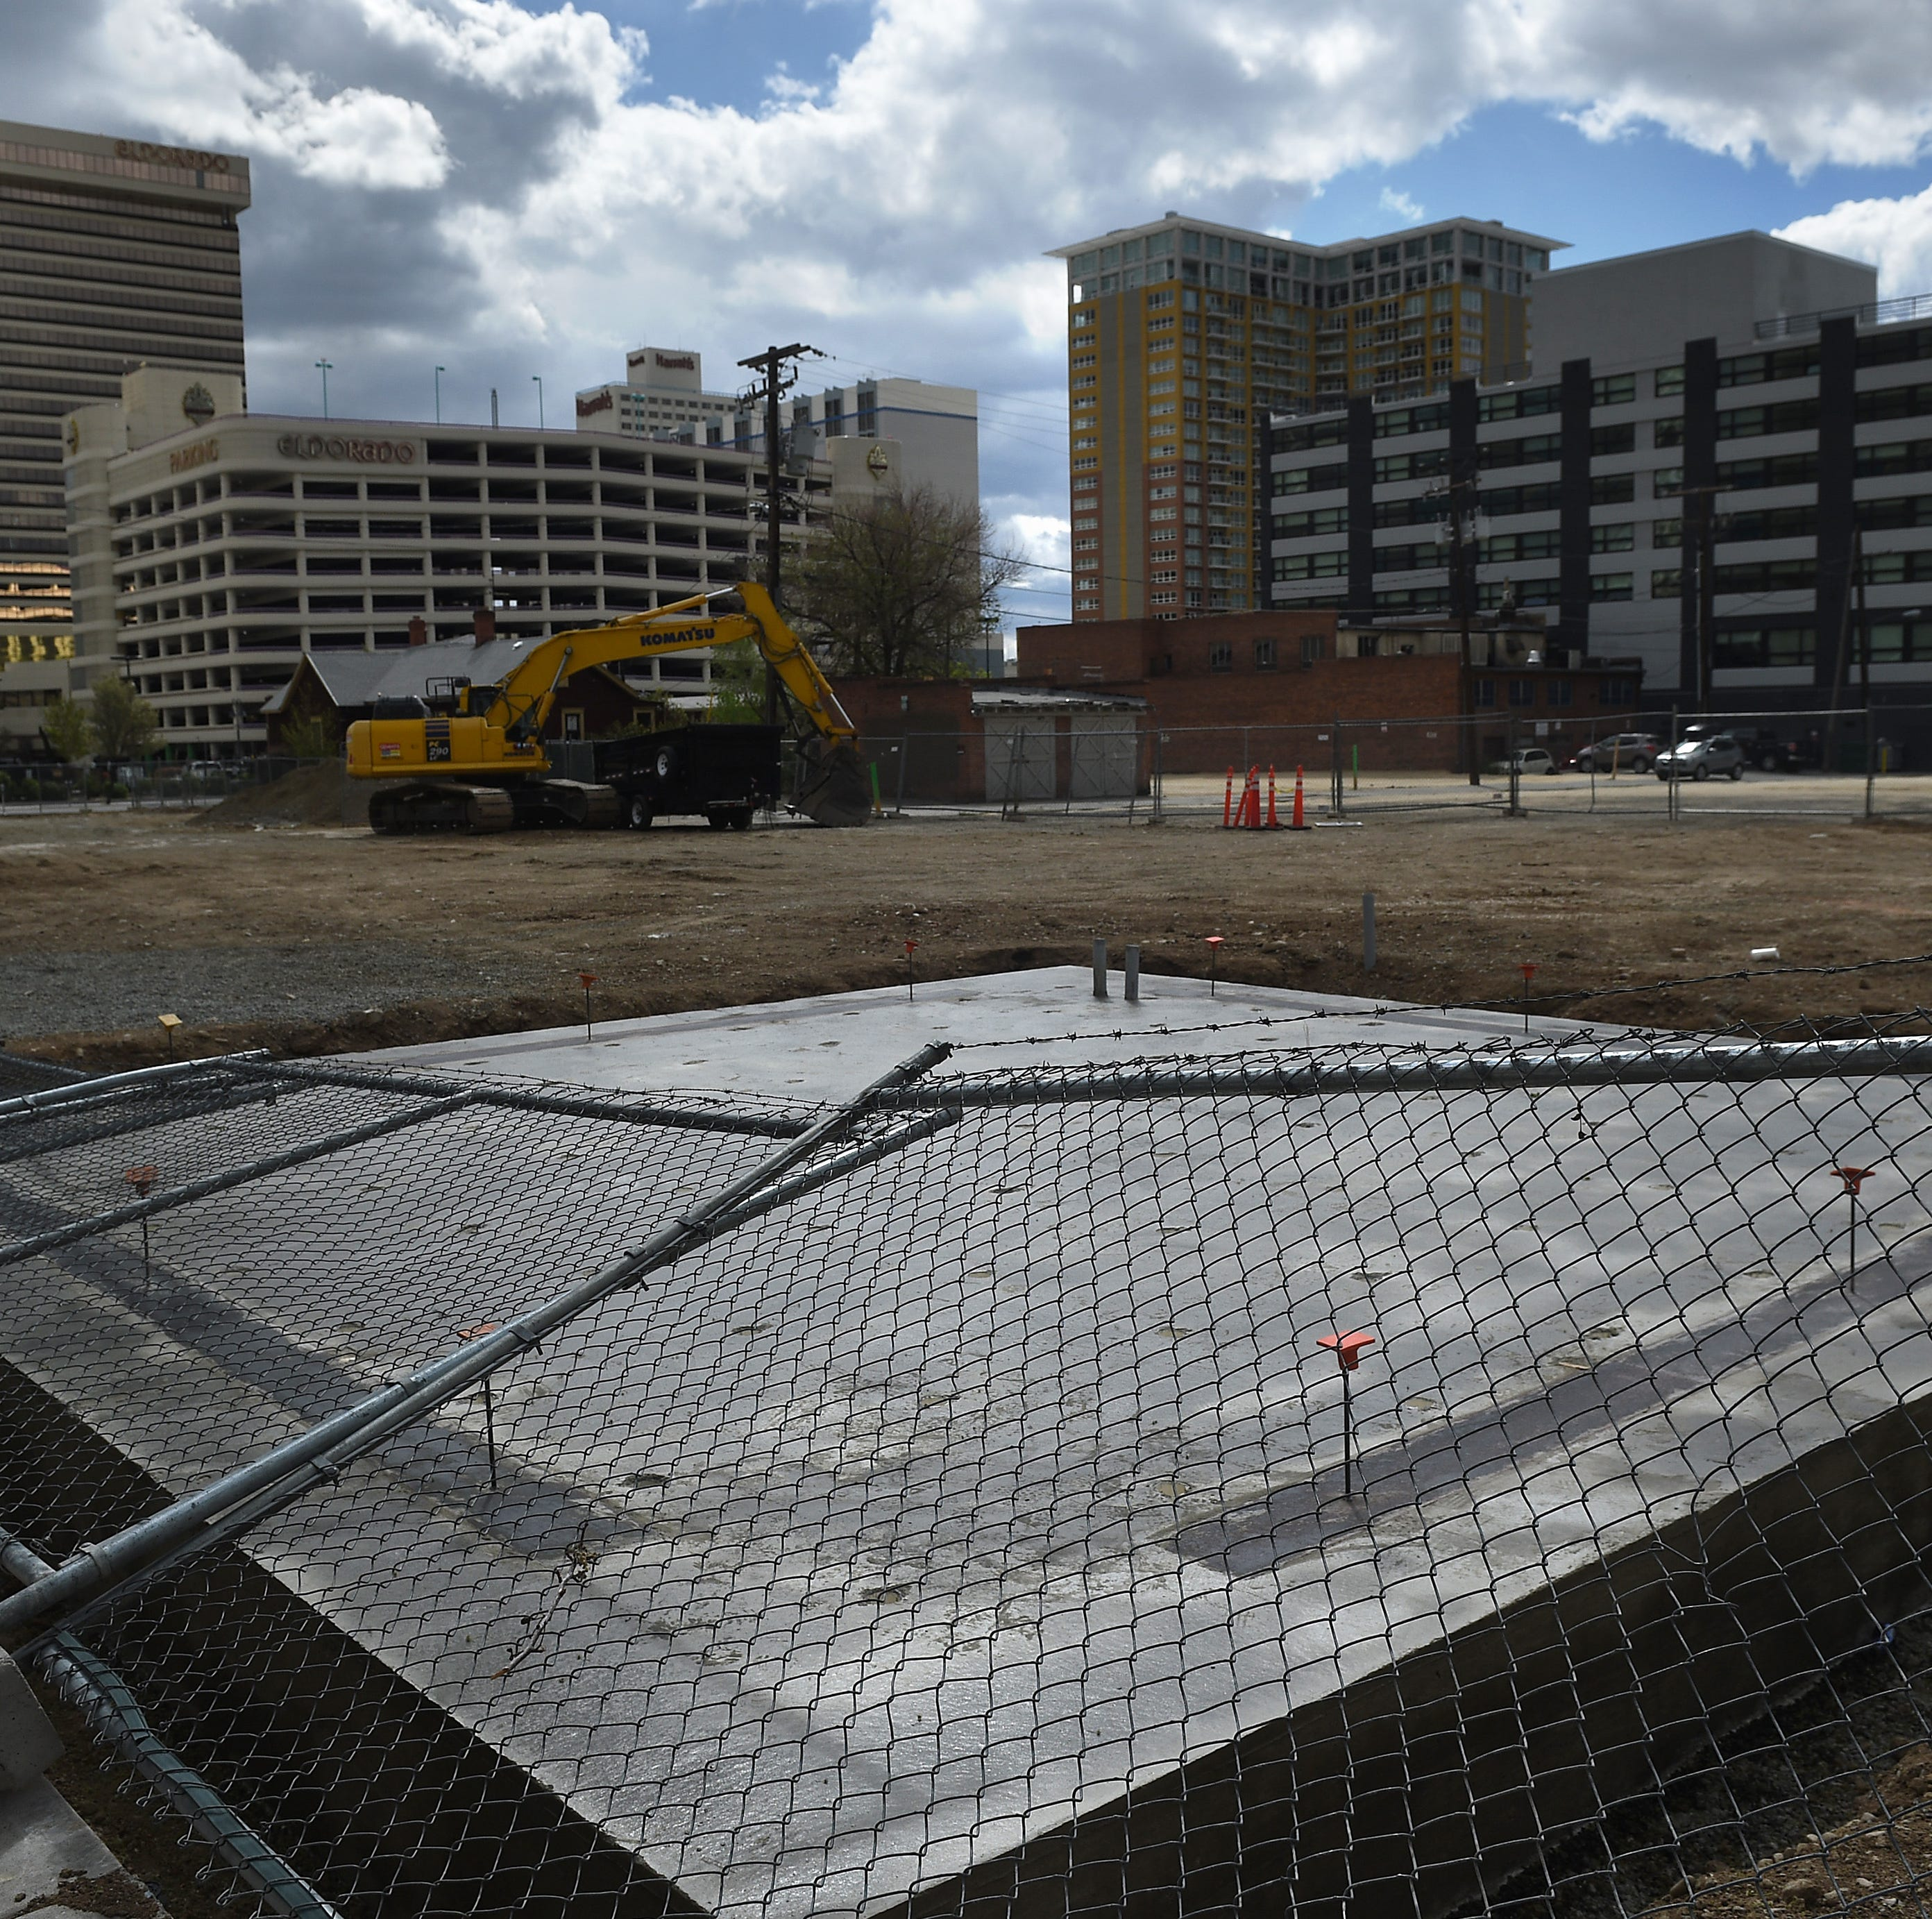 Jeff Jacobs: Downtown Reno sculptures won't supplant housing, 2,000 units eyed